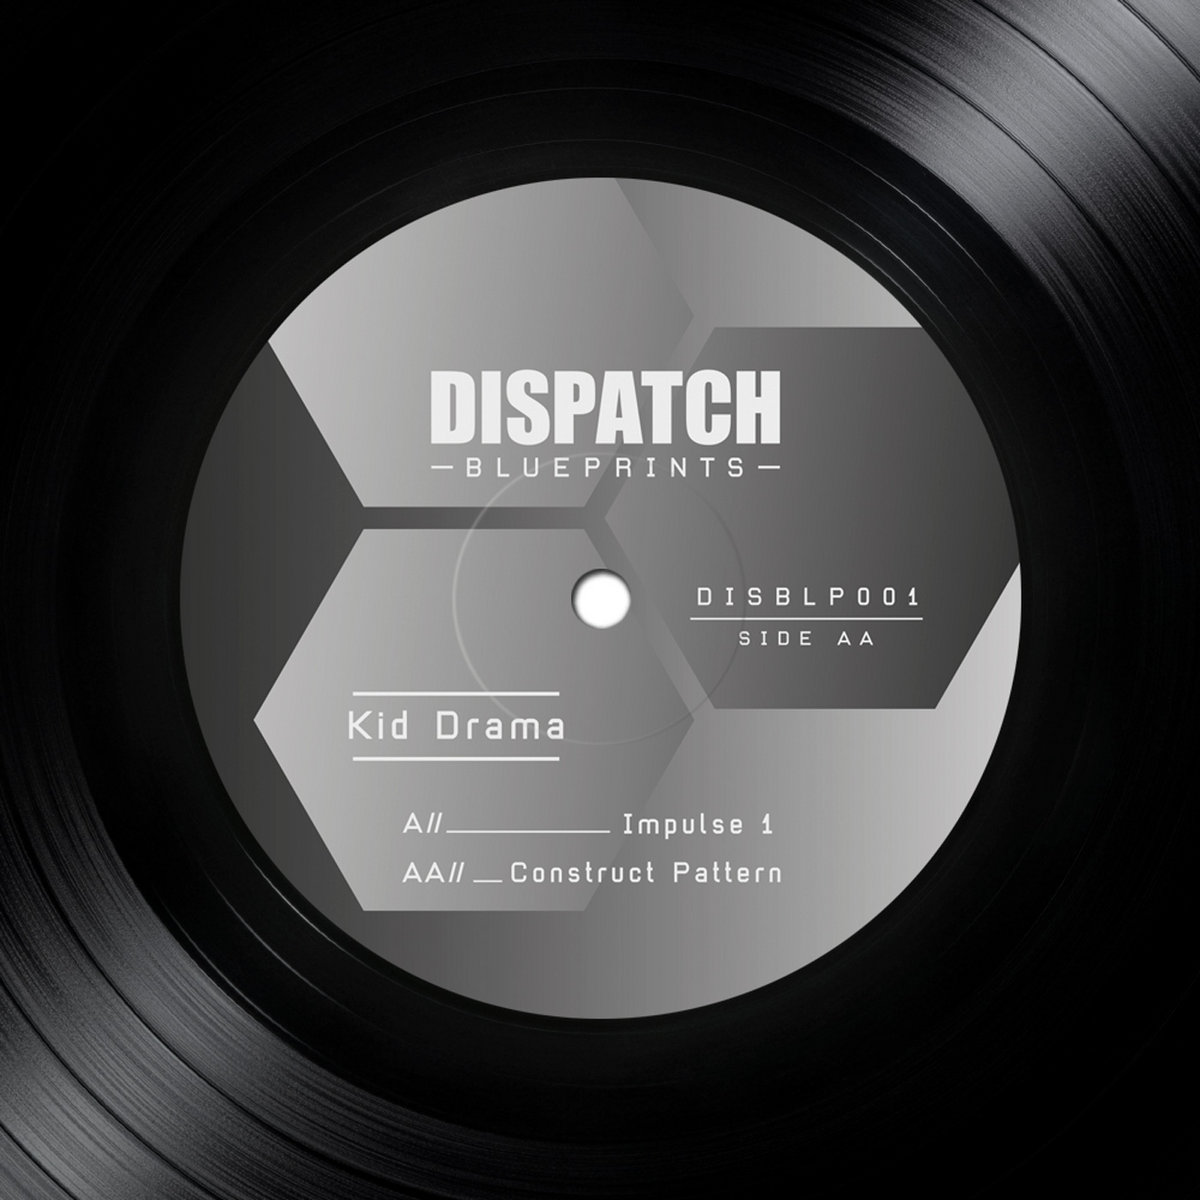 Impulse 1 dispatch recordings introducing a new label with a direction we proudly present dispatch blueprints with the debut release coming from one of our favourite artists malvernweather Image collections